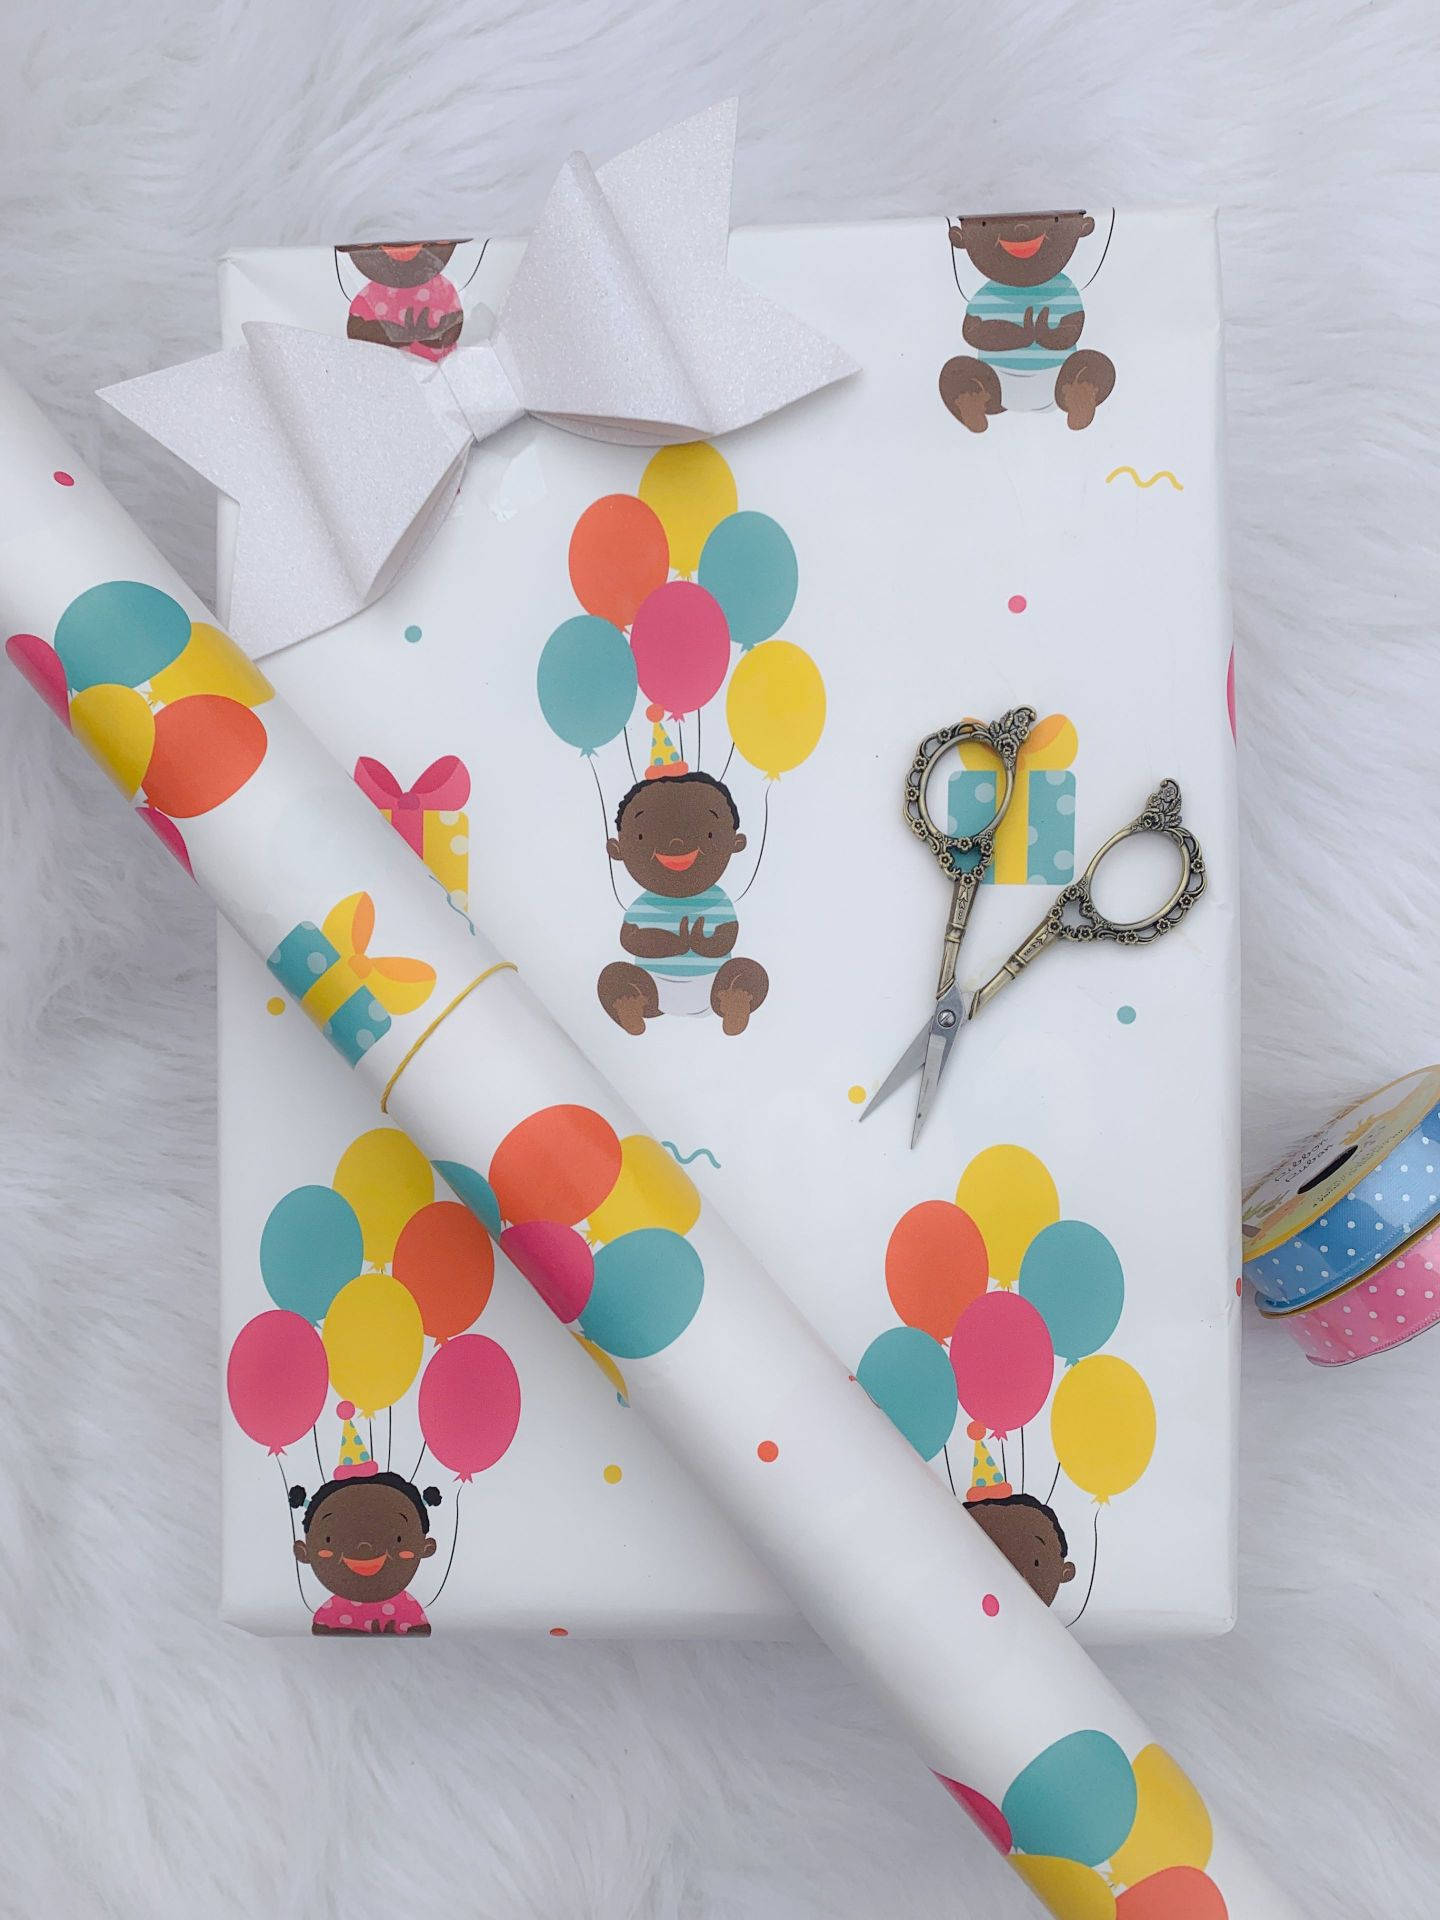 3628DA1A-4248-42A8-8494-160F32B0B634-1-1440x1920 Black Owned Paper Goods  Company Gives 3 Tips for How to Wrap Kid's Birthday Gifts